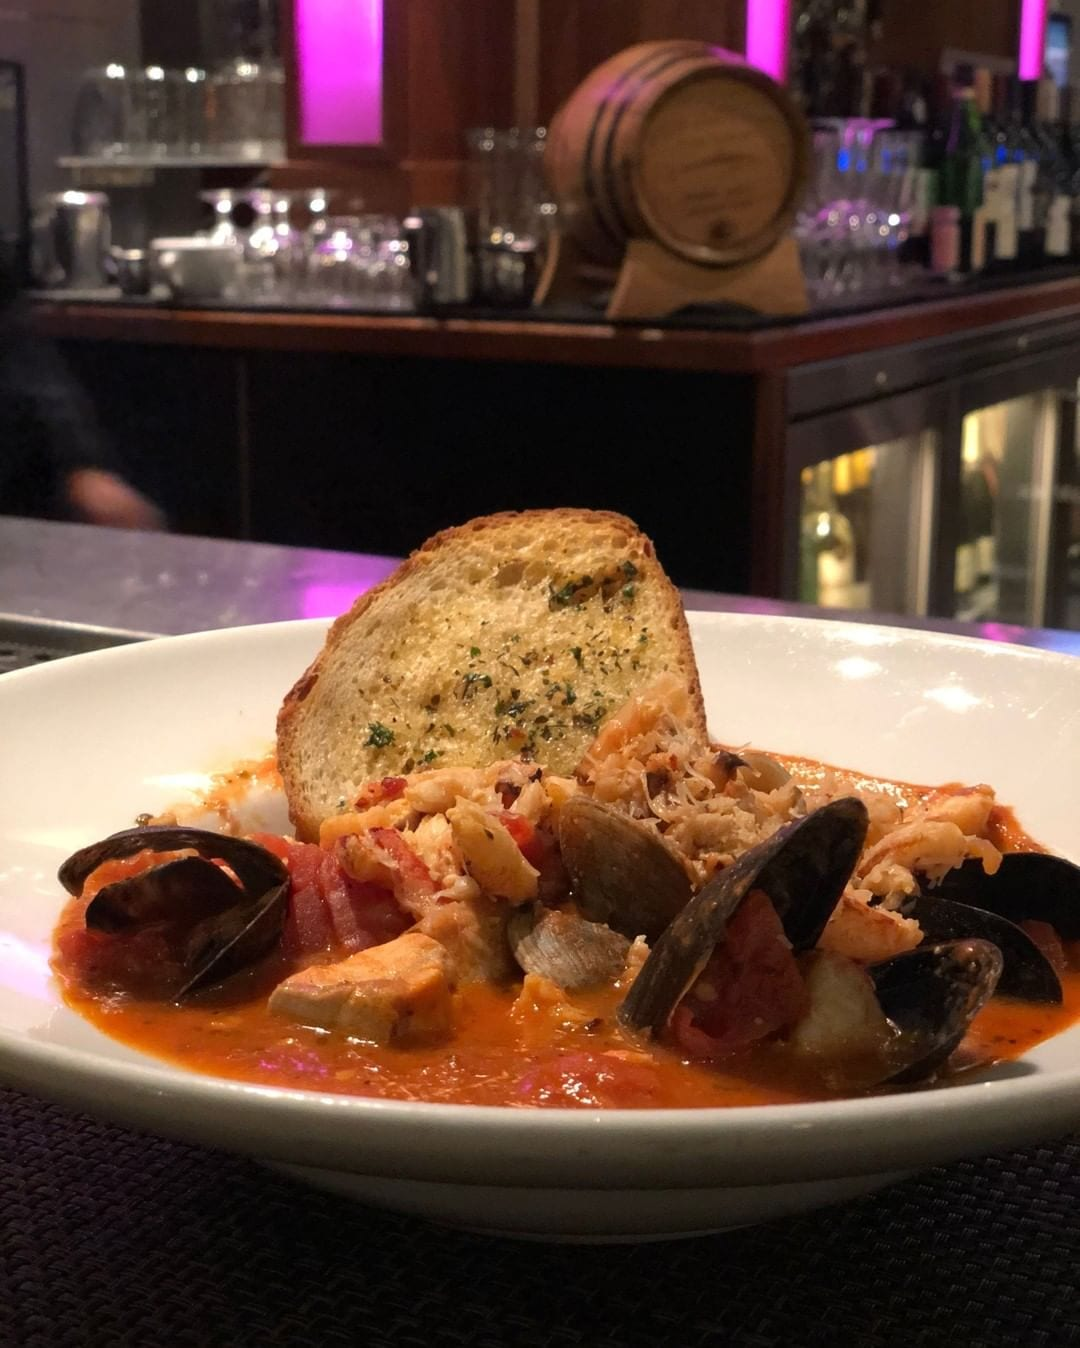 Tonight's weather calls for a winter warm soup. 🍲 Treat yourself to a San Francisco original at @fogharbor located across @hotelzephyrsf at @pier39. #cioppino #italian #seafood #foodiefriday